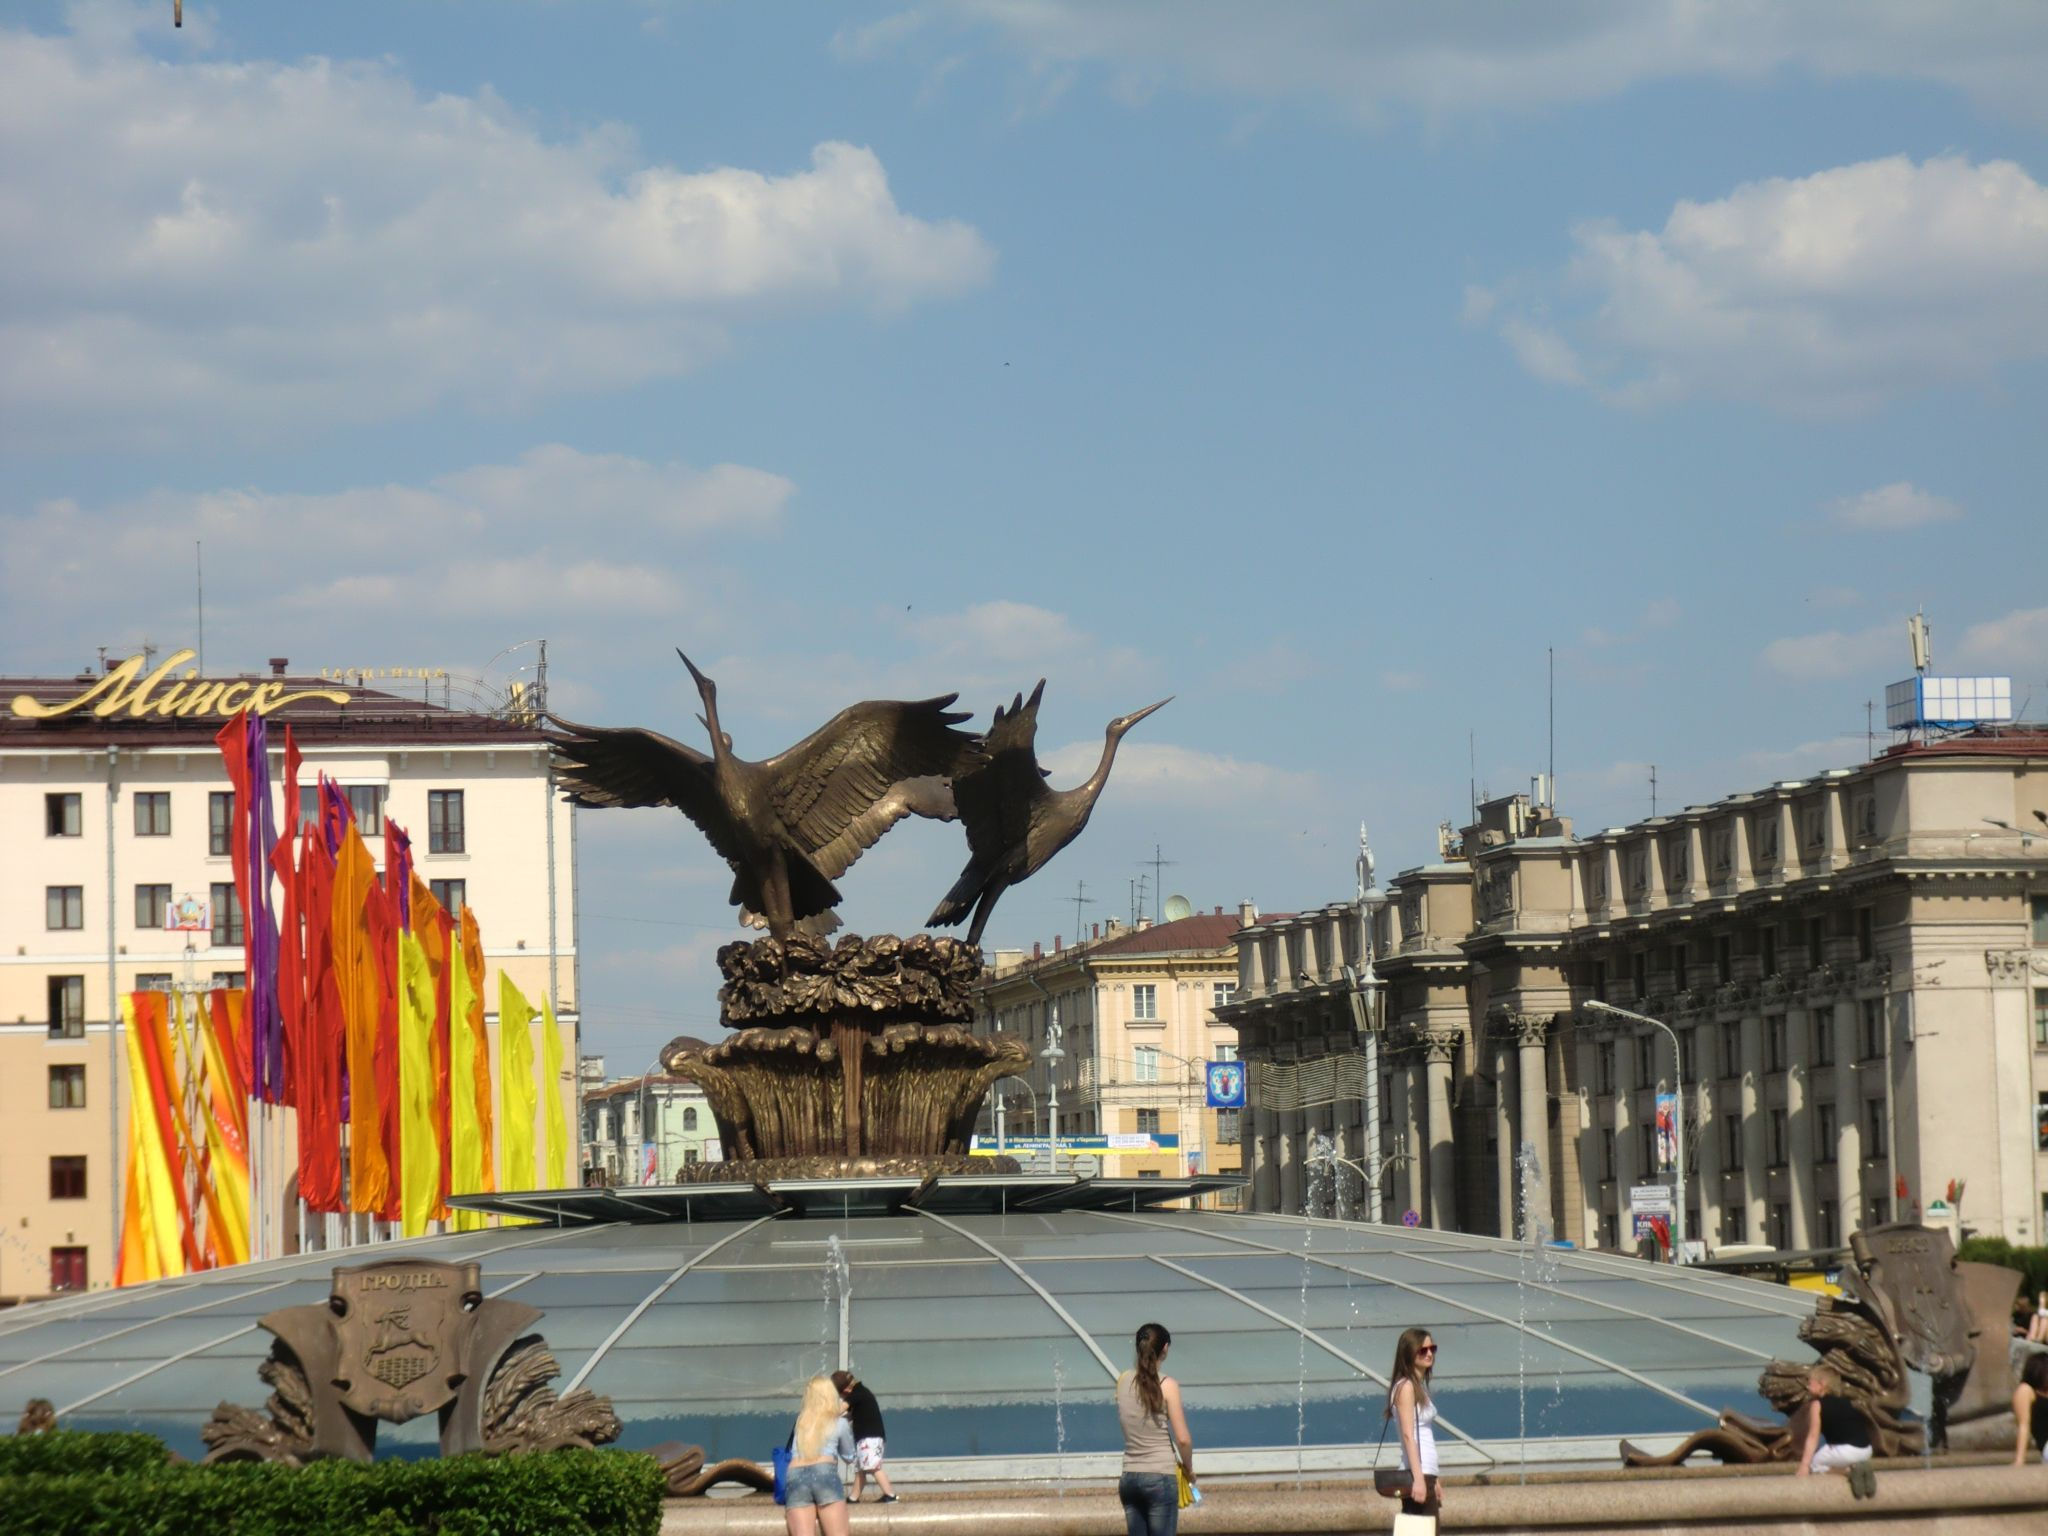 Minsk square 3 - Minsk, 1 amazing city you have to see